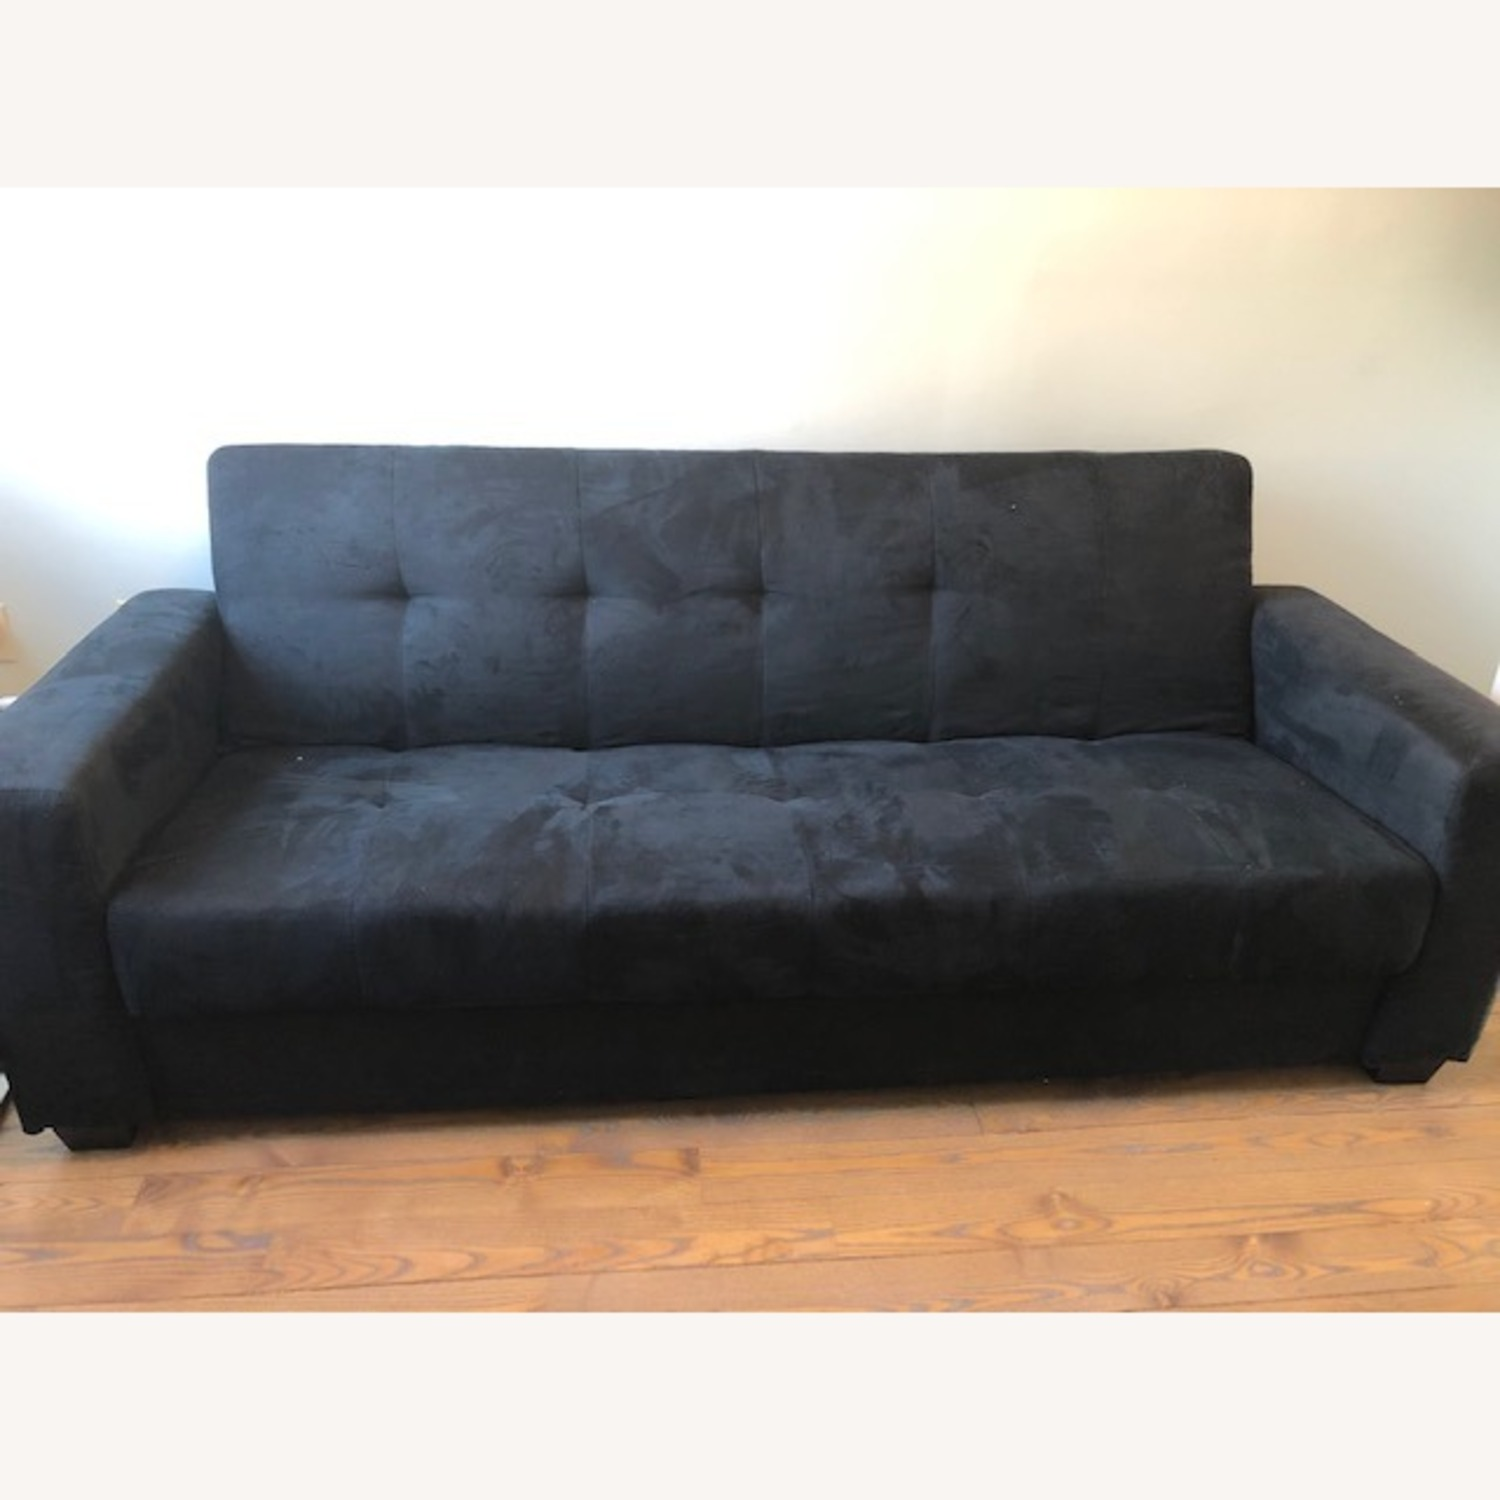 Lifestyle Solutions Futon with Storage - image-1